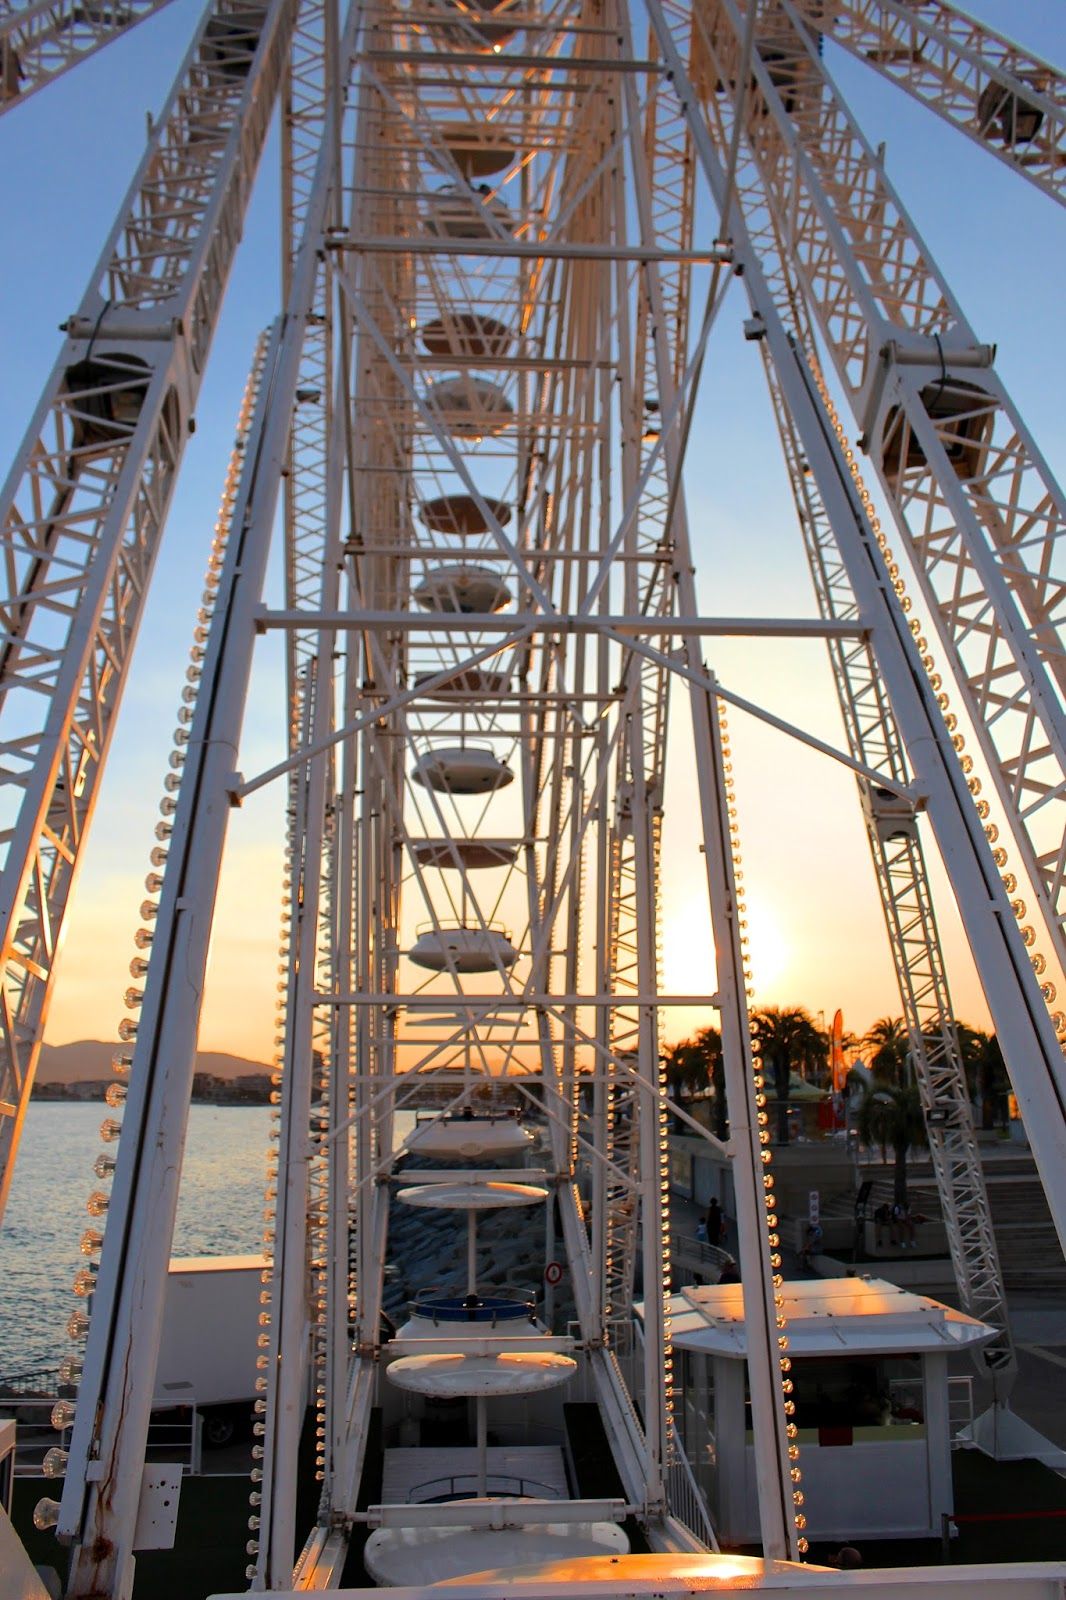 Ferris wheel structure by sunset